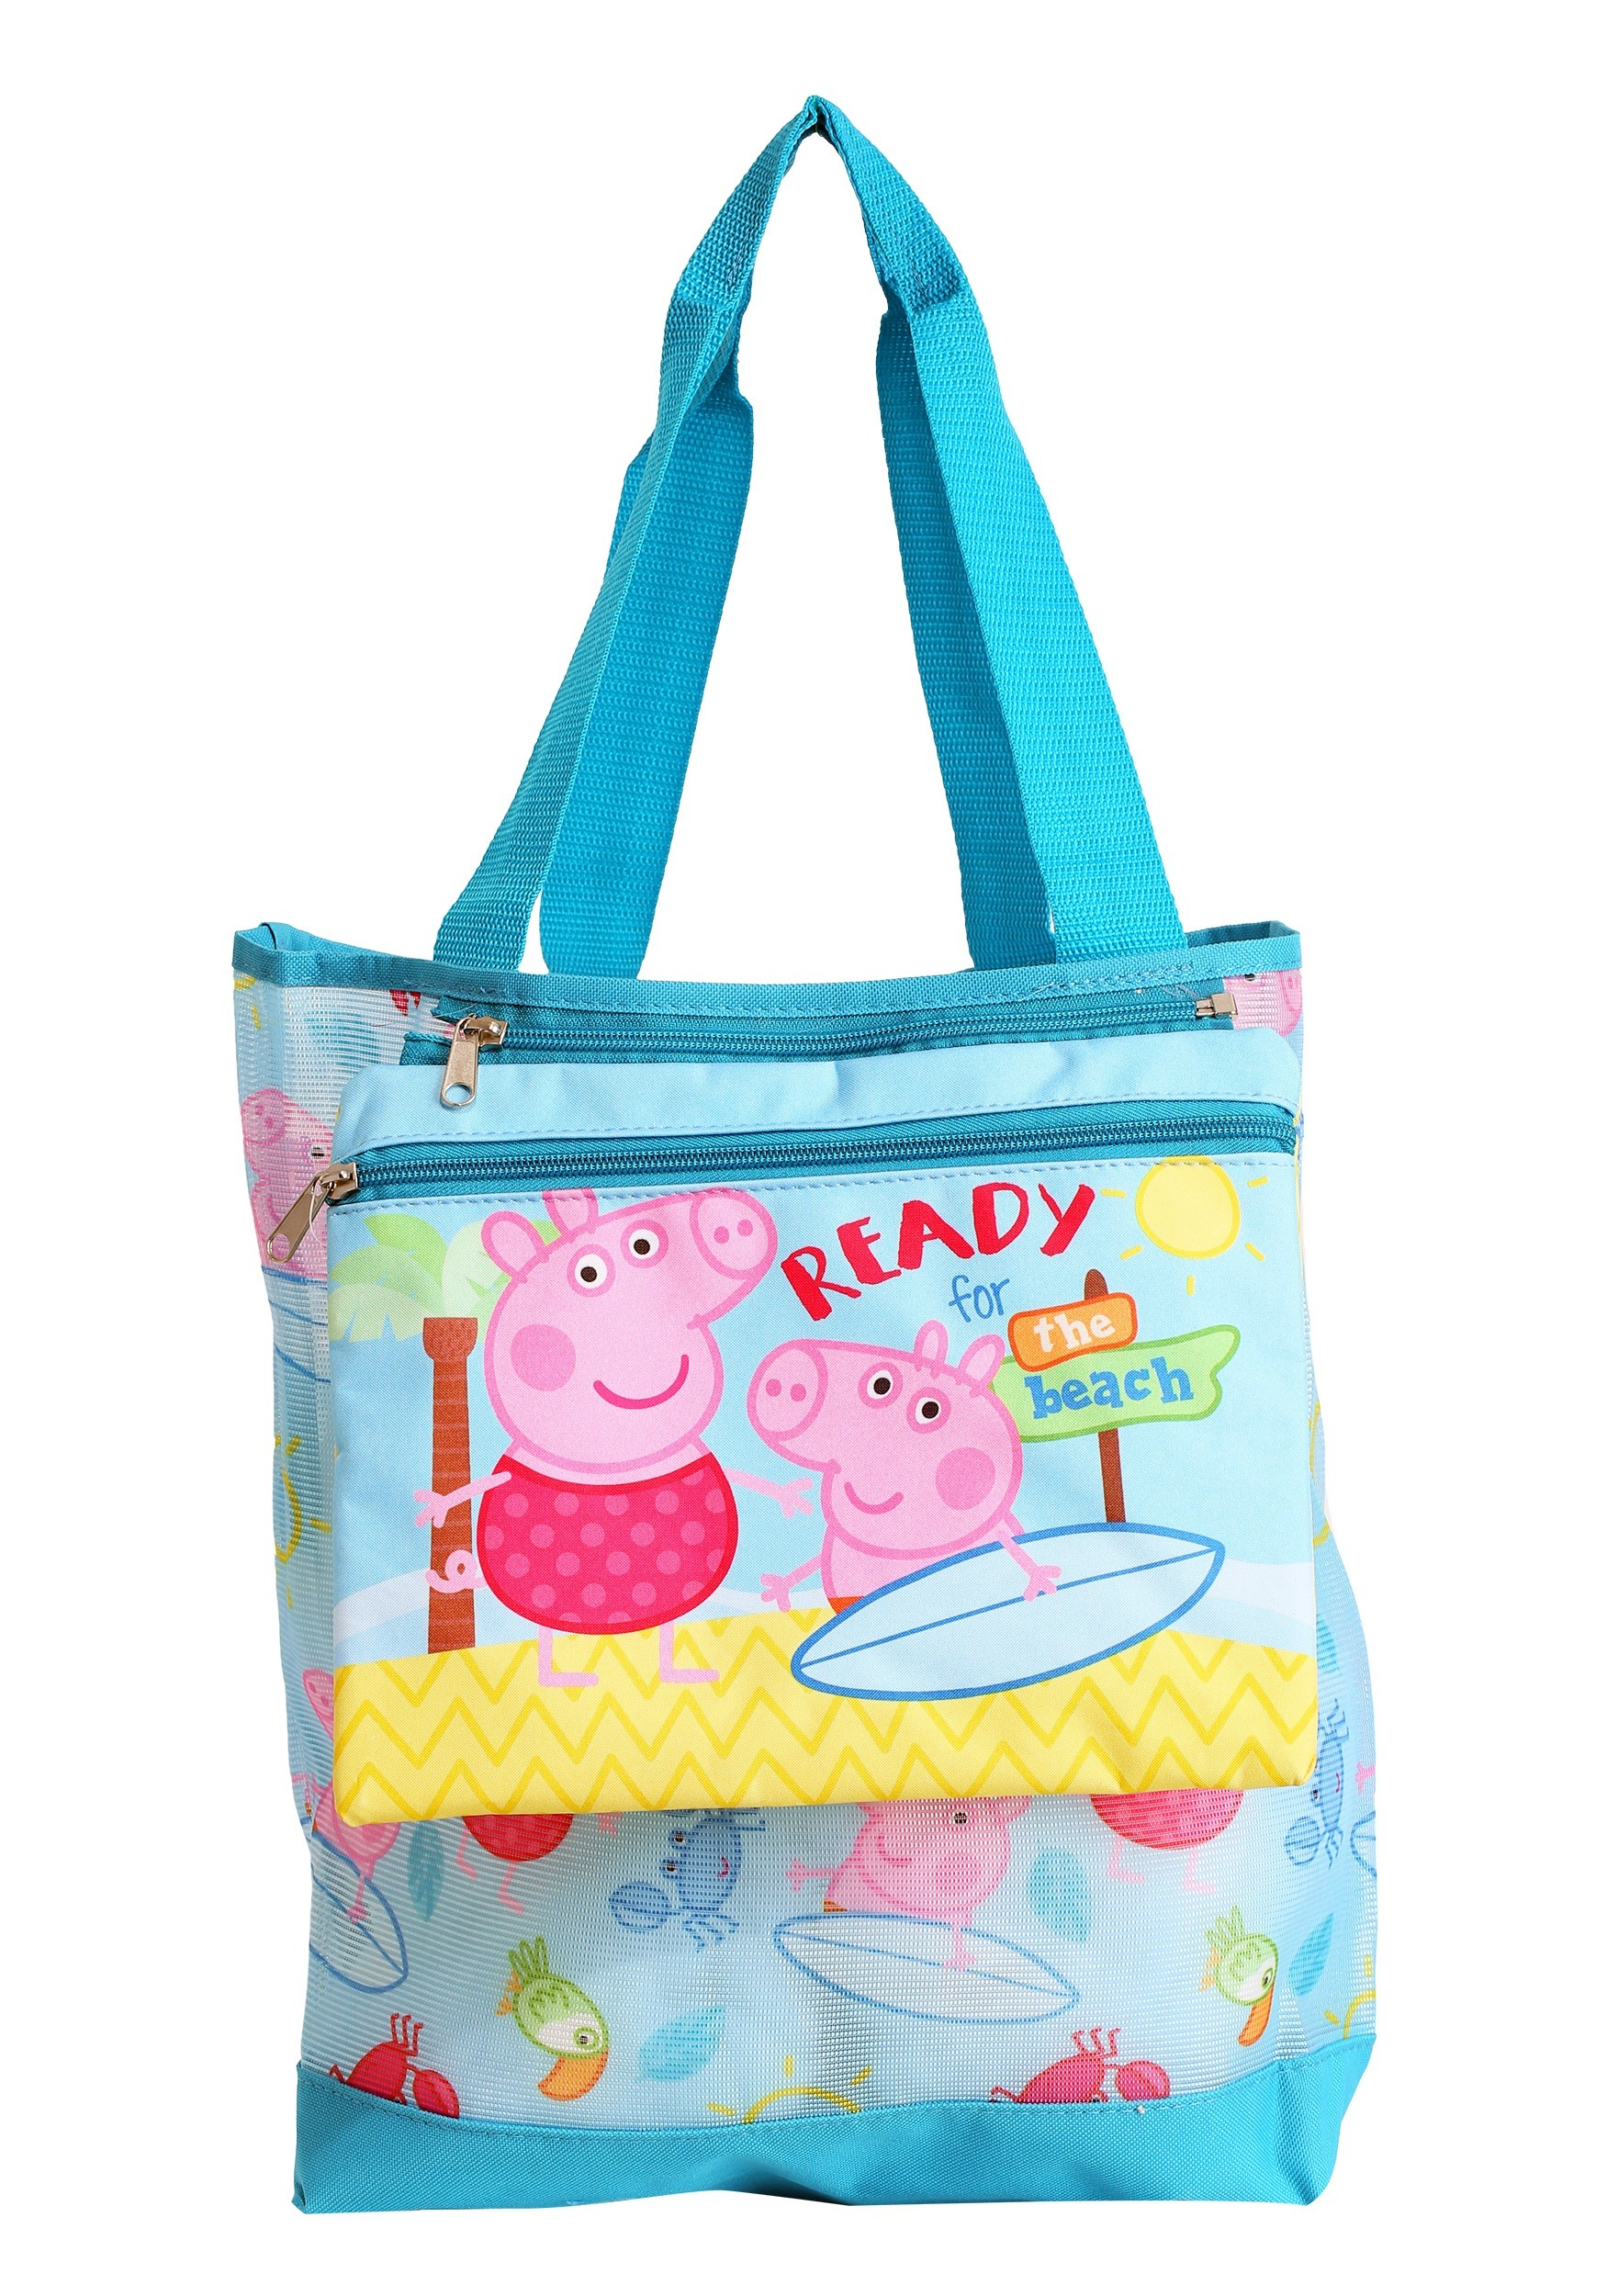 Peppa_Pig_Tote_Bag_for_Kids